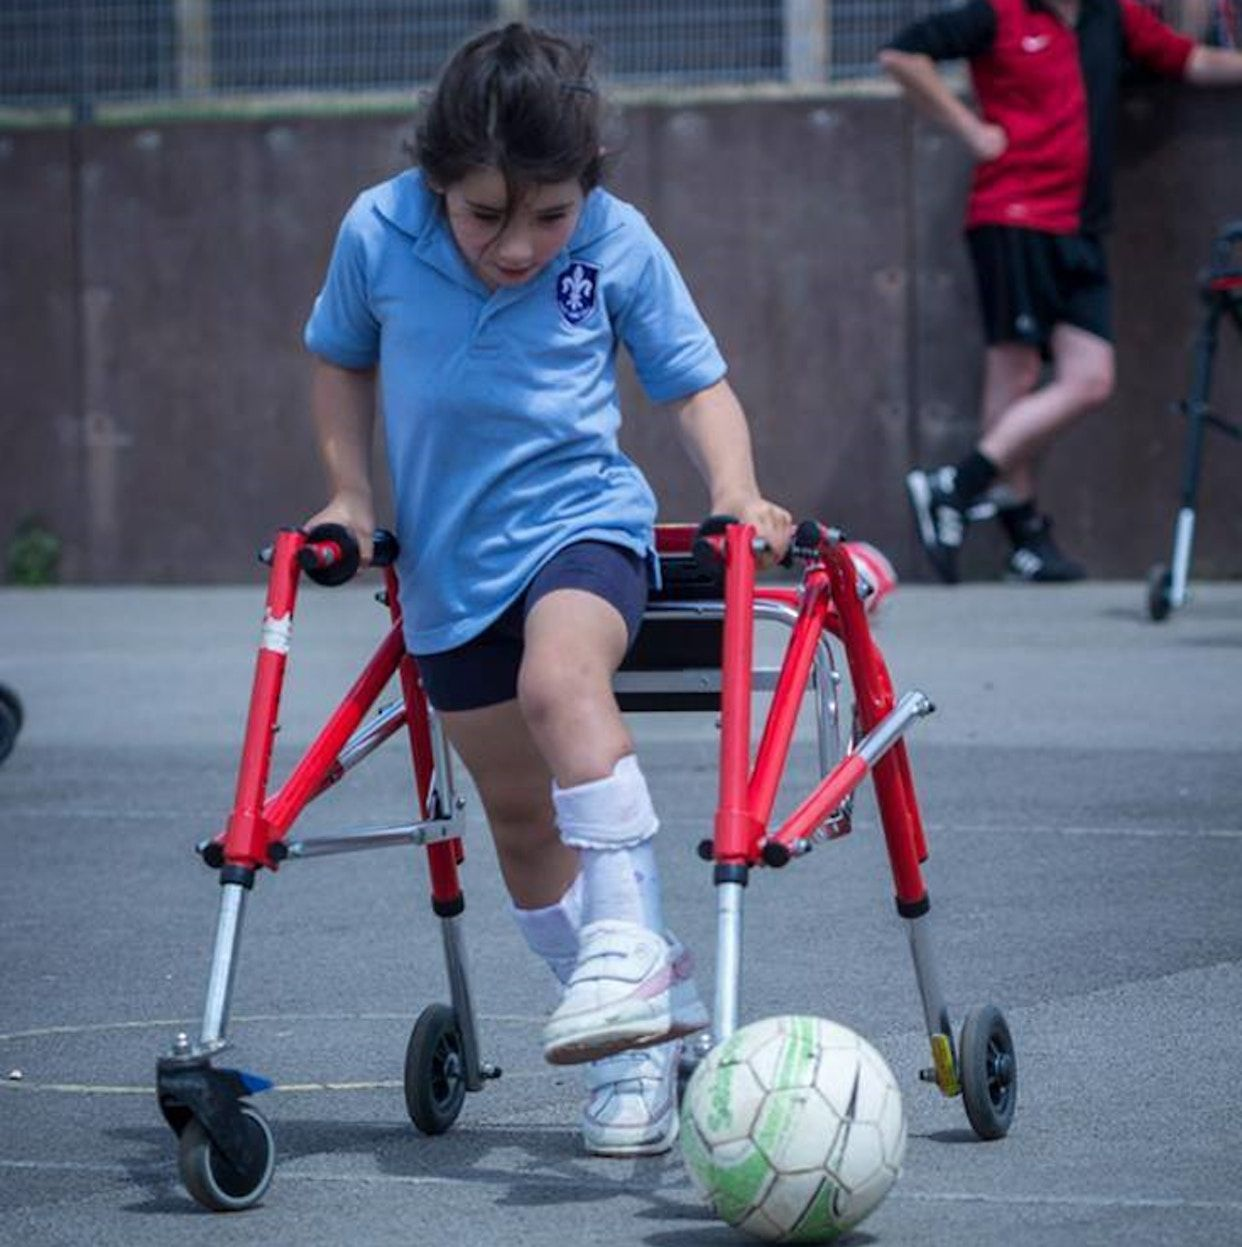 There's a new sport for kids with mobility issues, and it